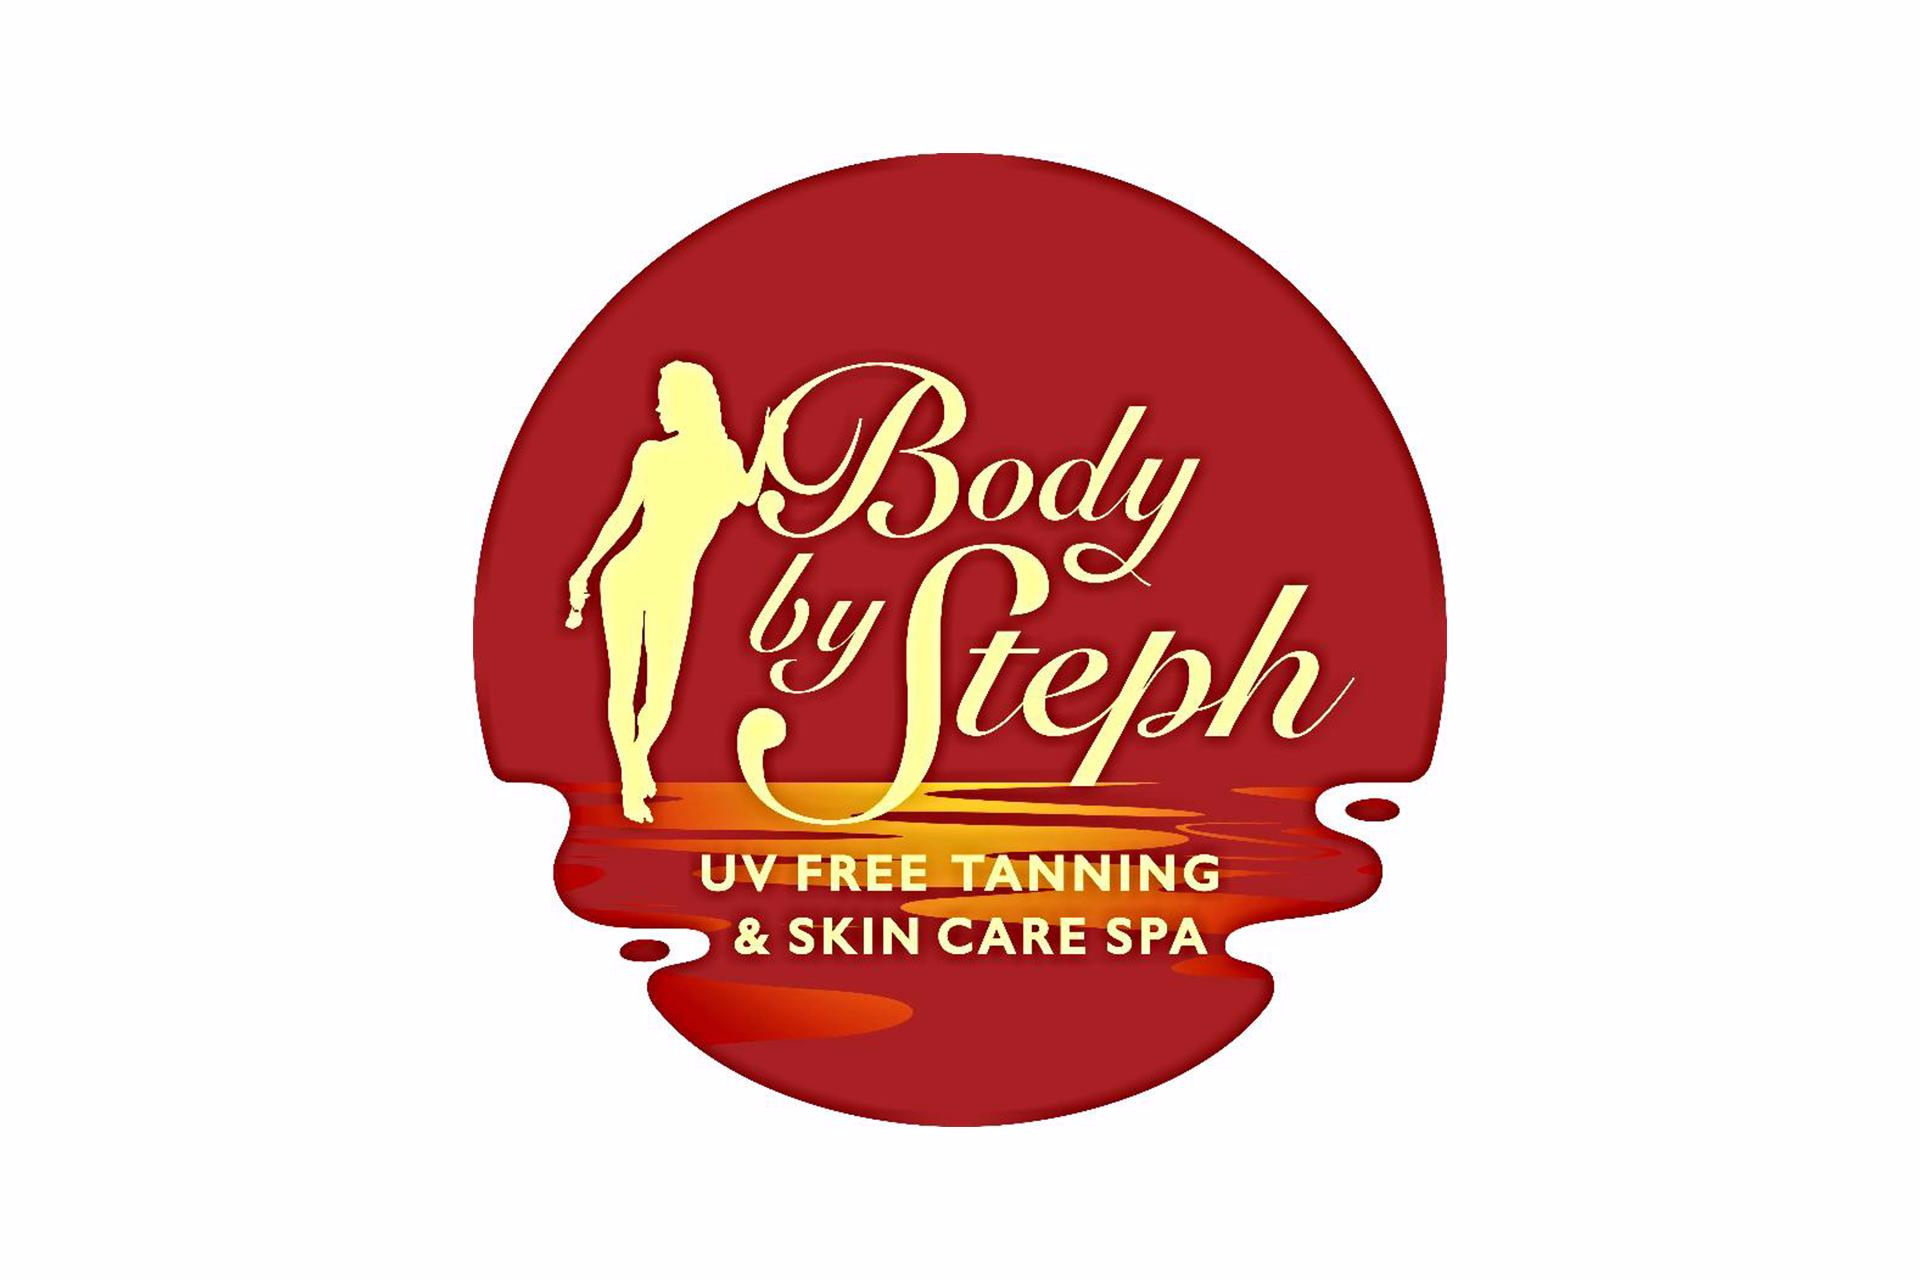 Body By Steph Tanning & Skin Care Salon In Henderson NV